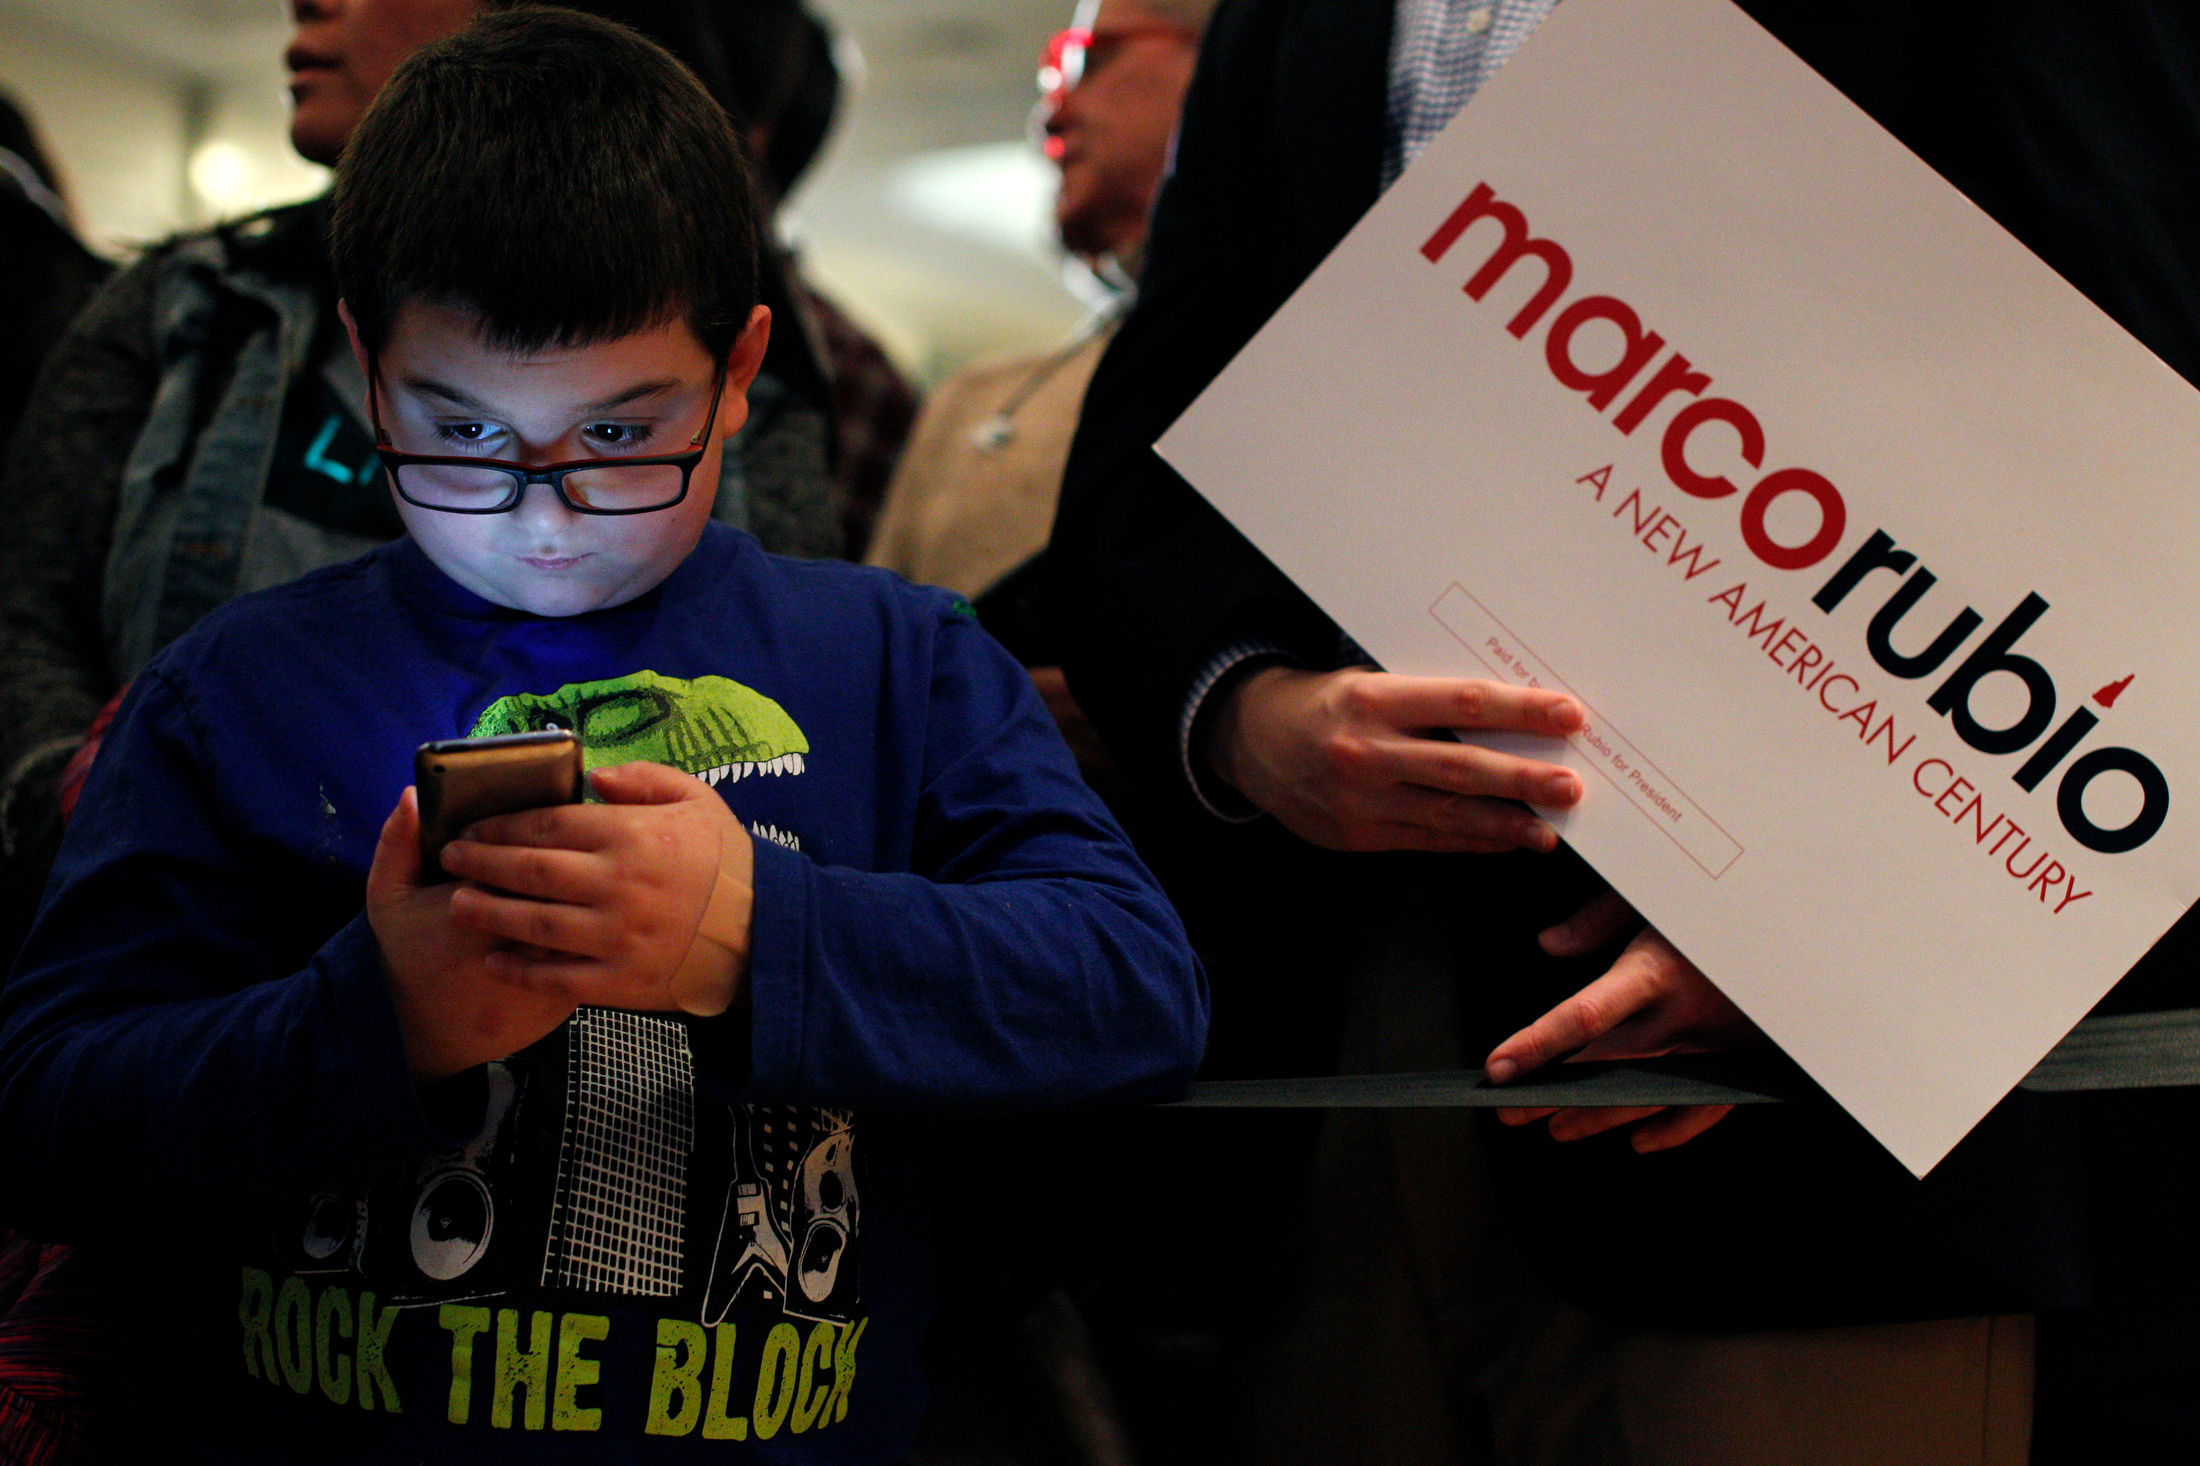 Mark Mooers, 9 of Manchester, New Hampshire, plays a game on his iPod while waiting with his family at a primary night watch party for Republican candidate for president Marco Rubio at the Radisson in Manchester, New Hampshire on February 9, 2016. Early results showed Rubio finishing in fifth place in the nations first Presidential Primary.